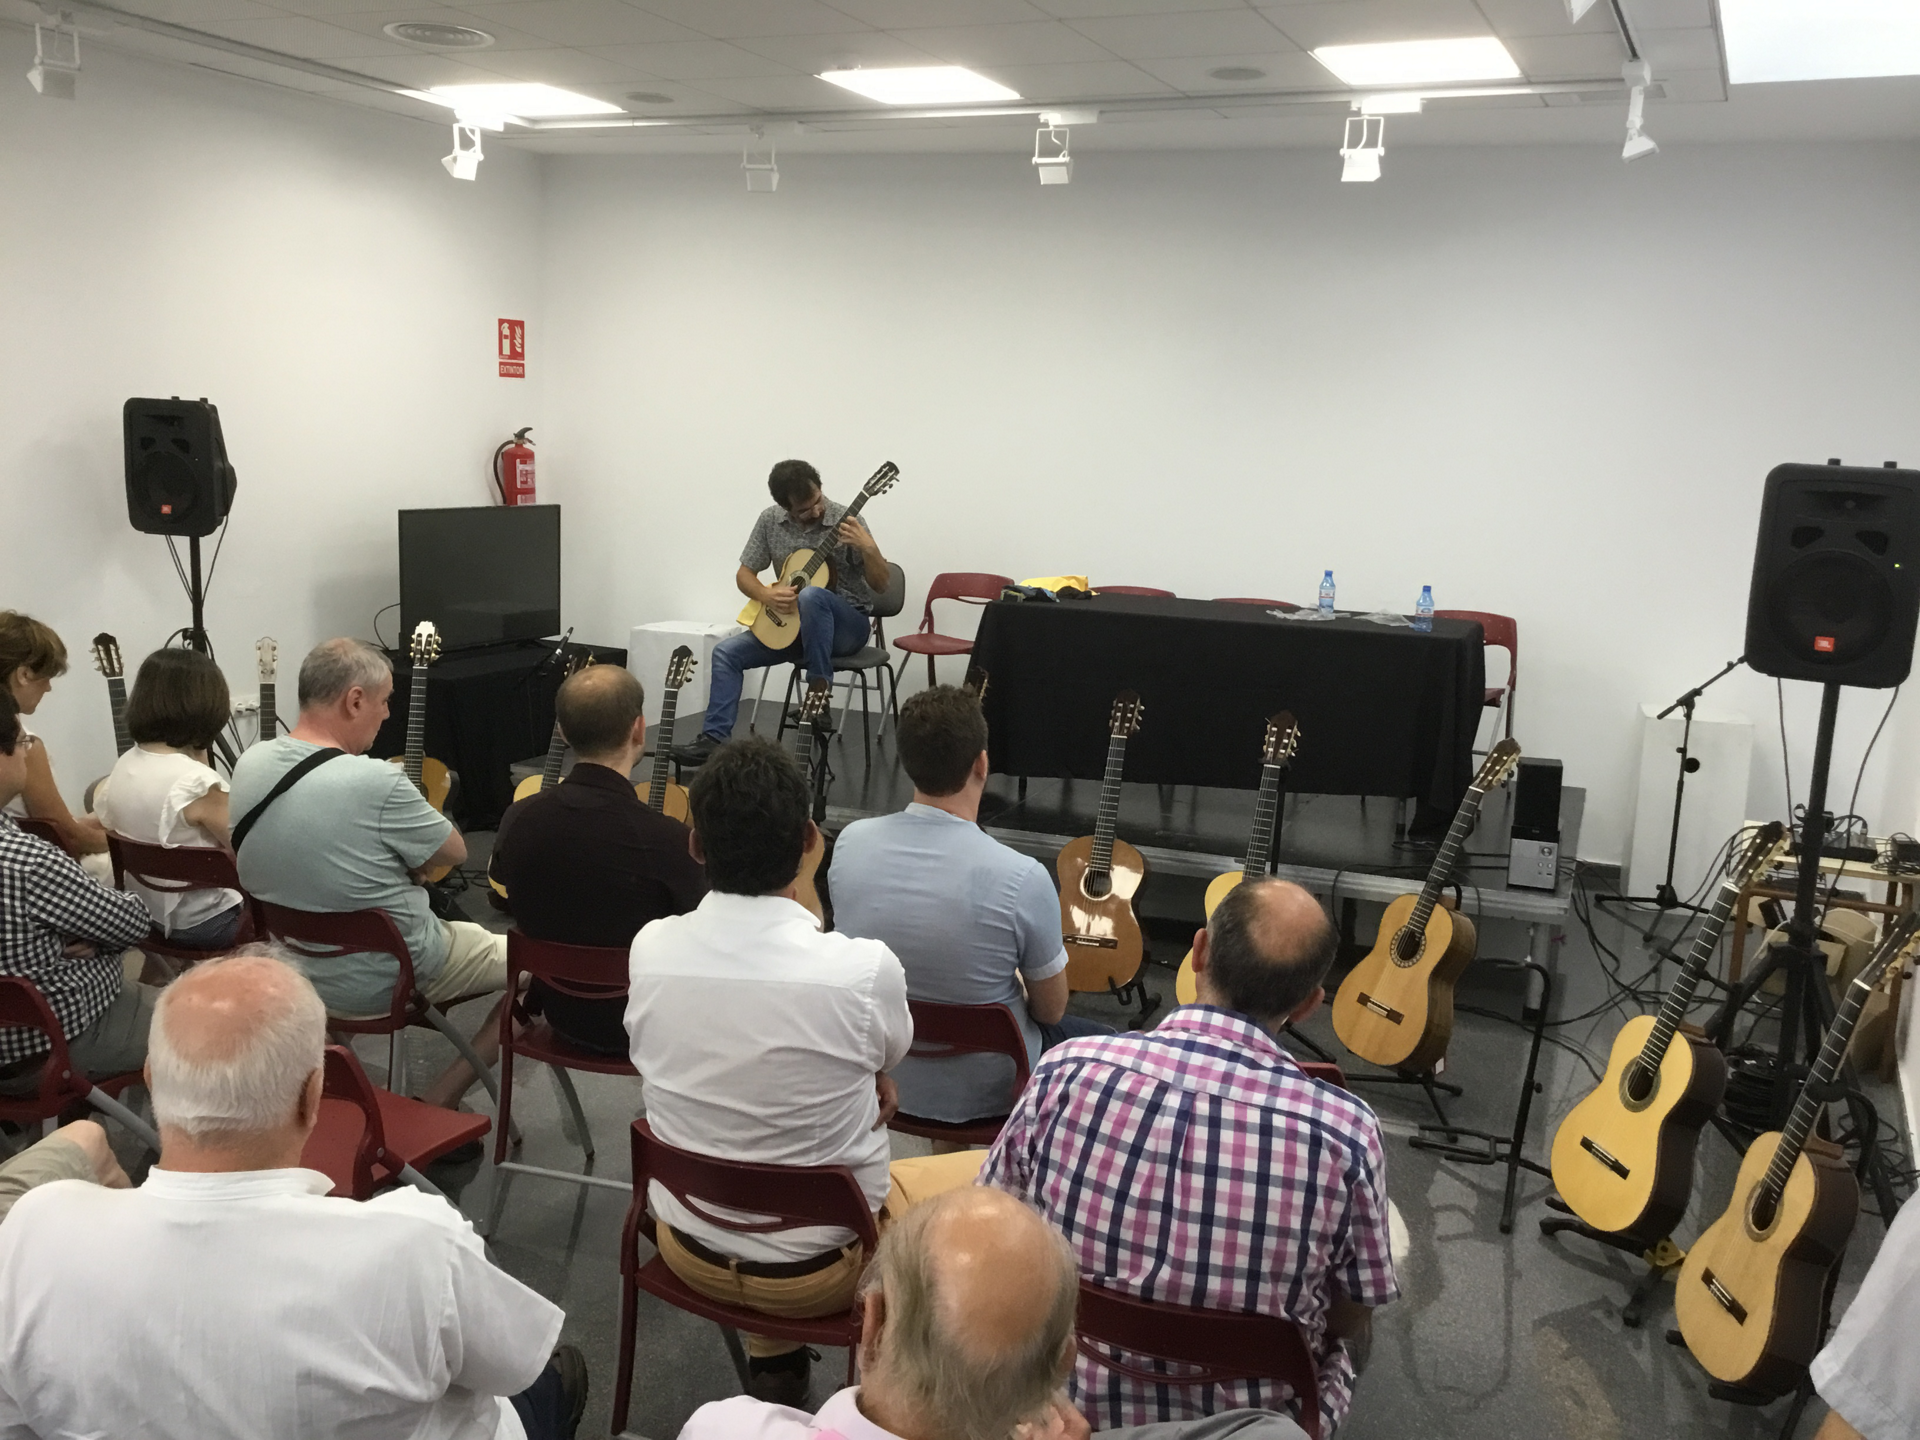 Exhibition of artisan guitars at Villa Petrer 2018